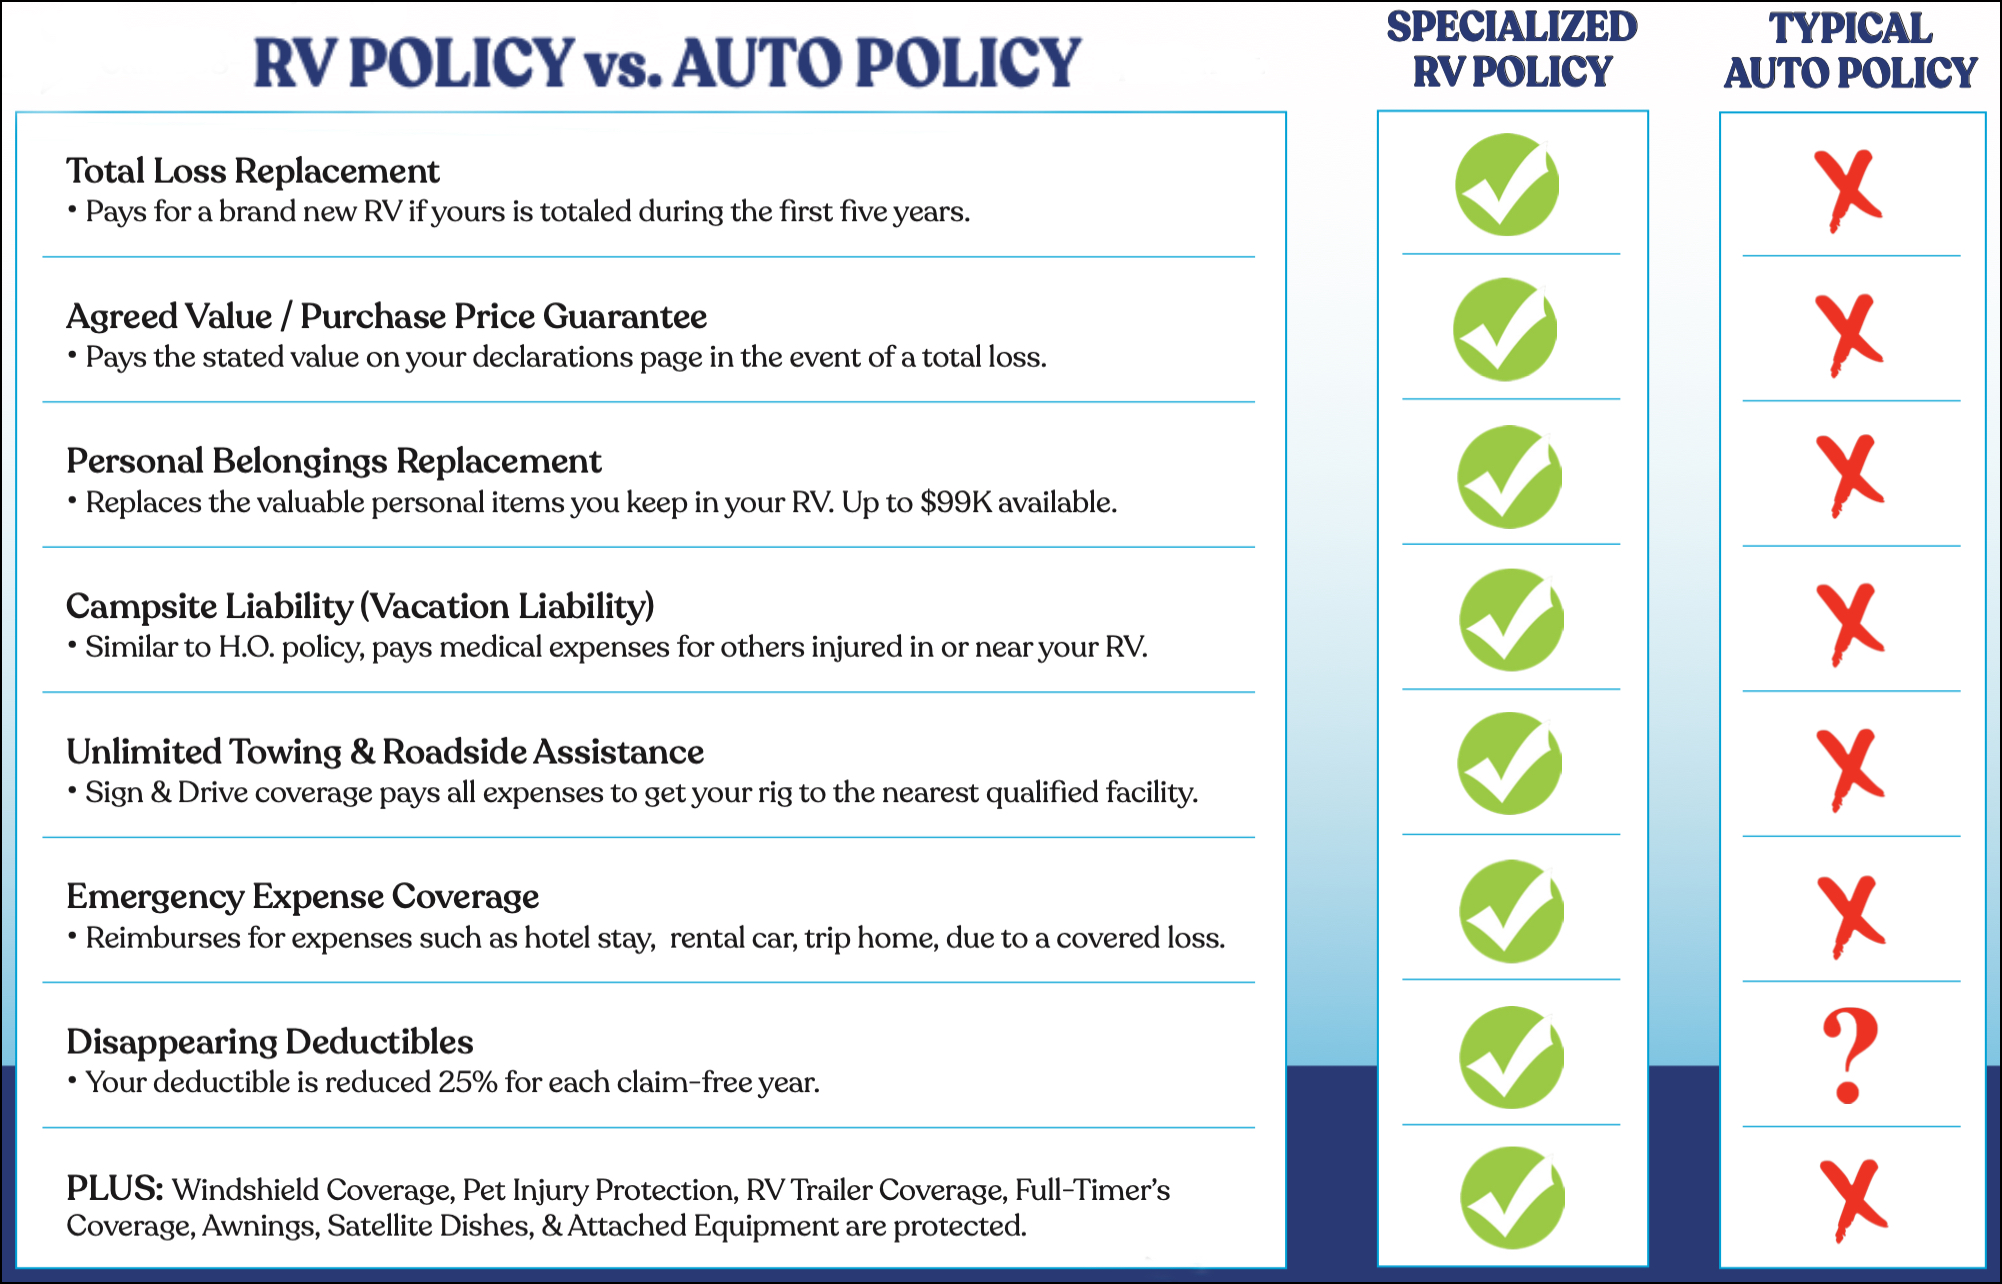 RV versus Auto Policy